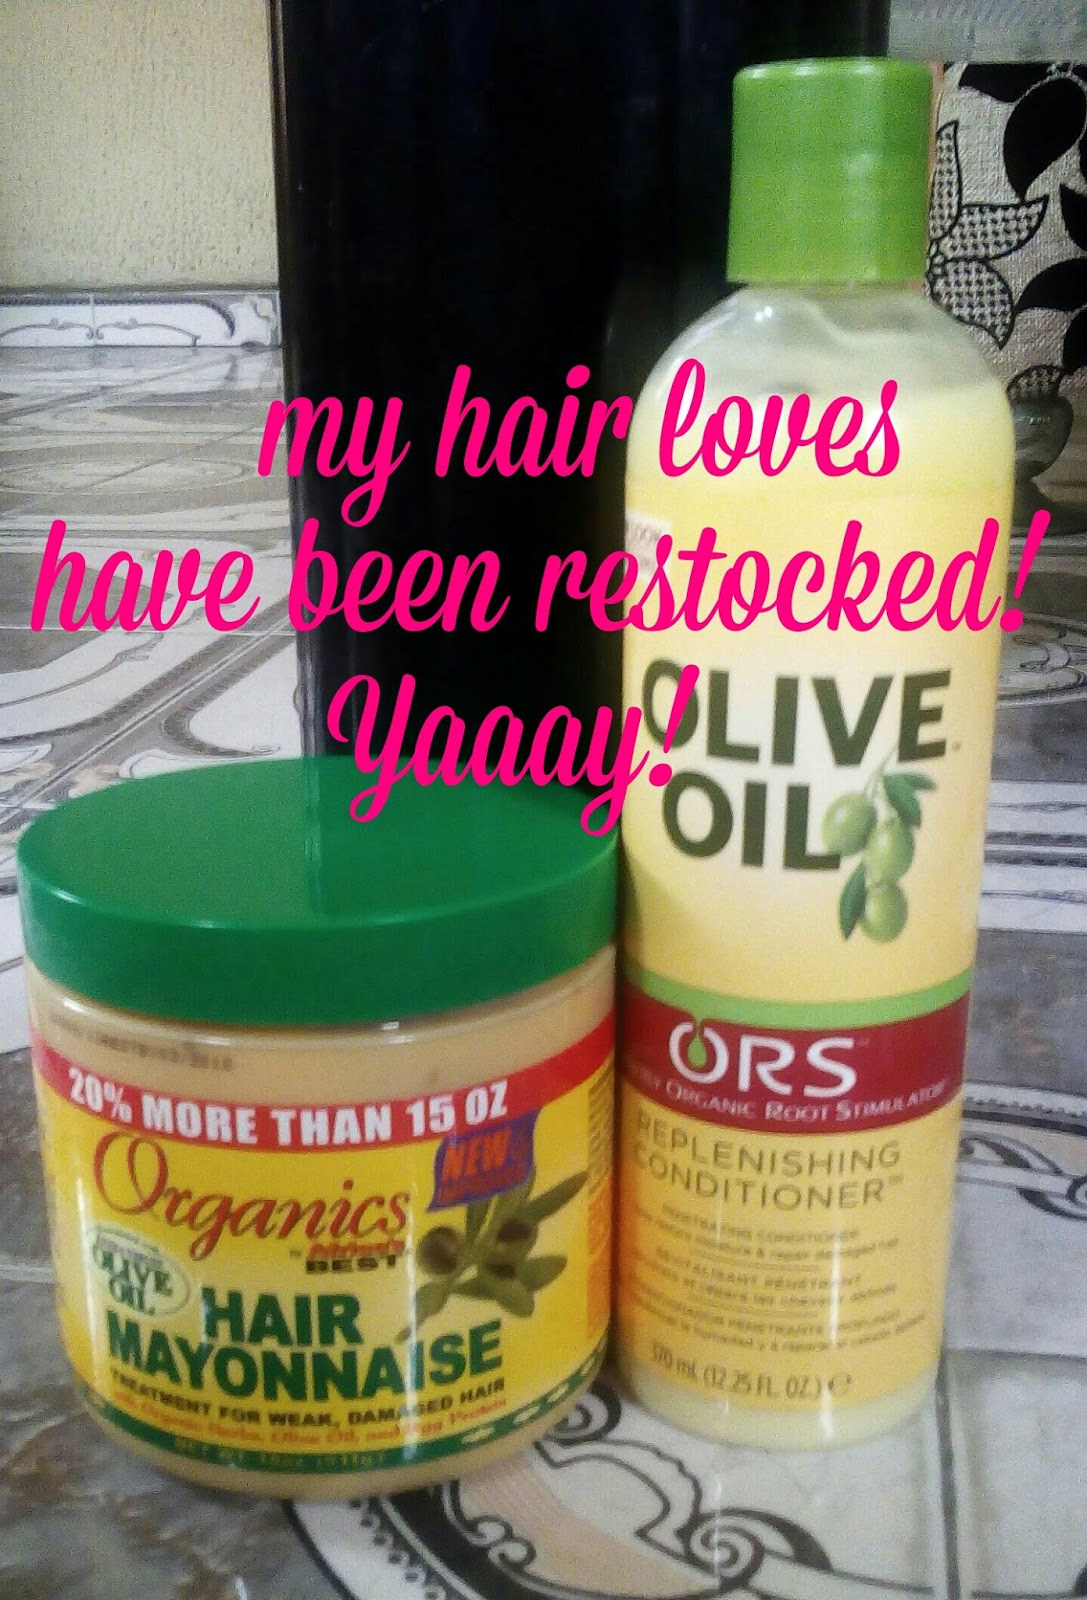 Deep Condition With Organic Root Stimulator Replenishing Conditioner Moisturizing Or Organics By Africa S Best Hair Mayonnaise For